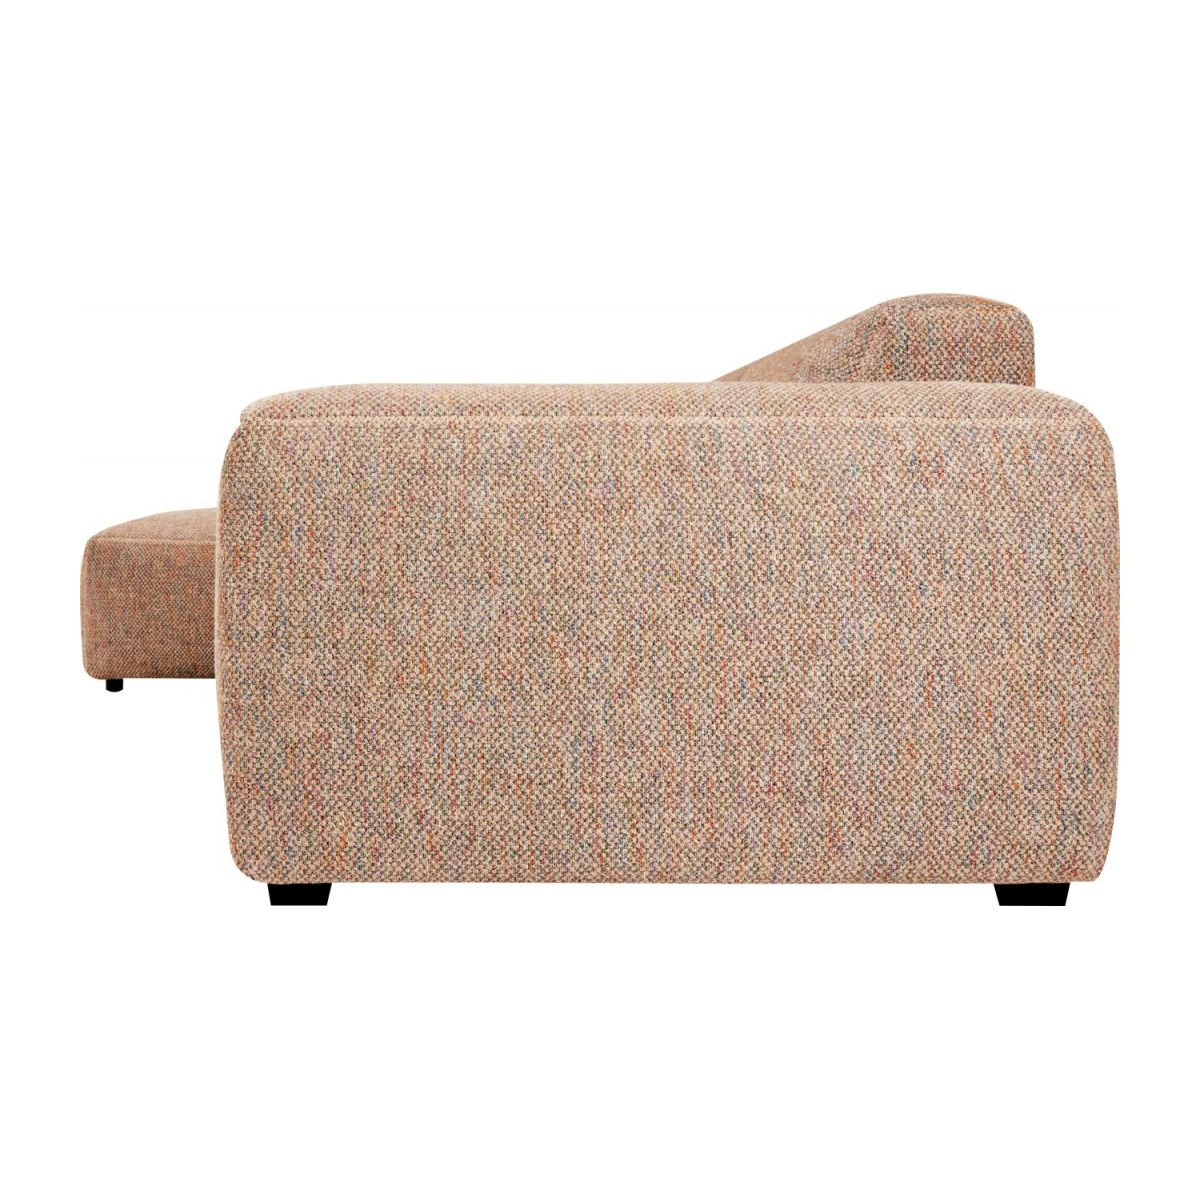 3 seater sofa with left chaise longue in Bellagio fabric, passion orange n°4